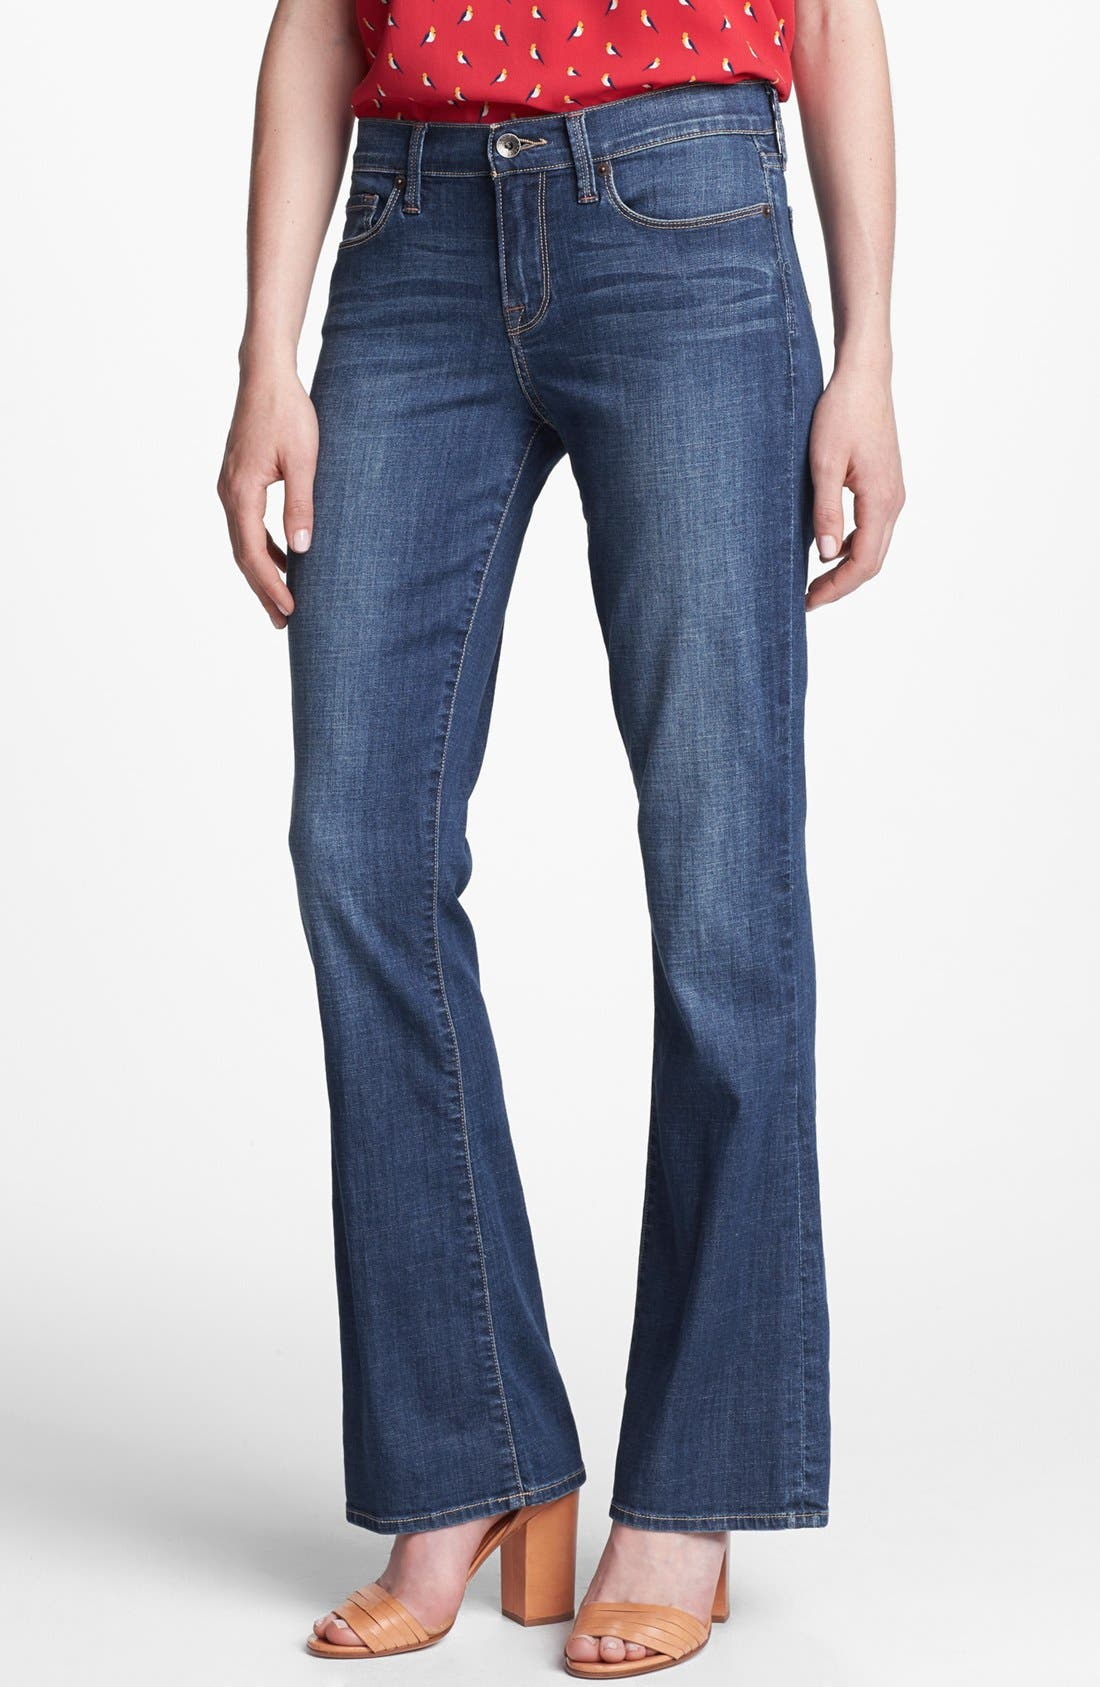 Alternate Image 1 Selected - Lucky Brand 'Sofia' Bootcut Jeans (Medium Olive)